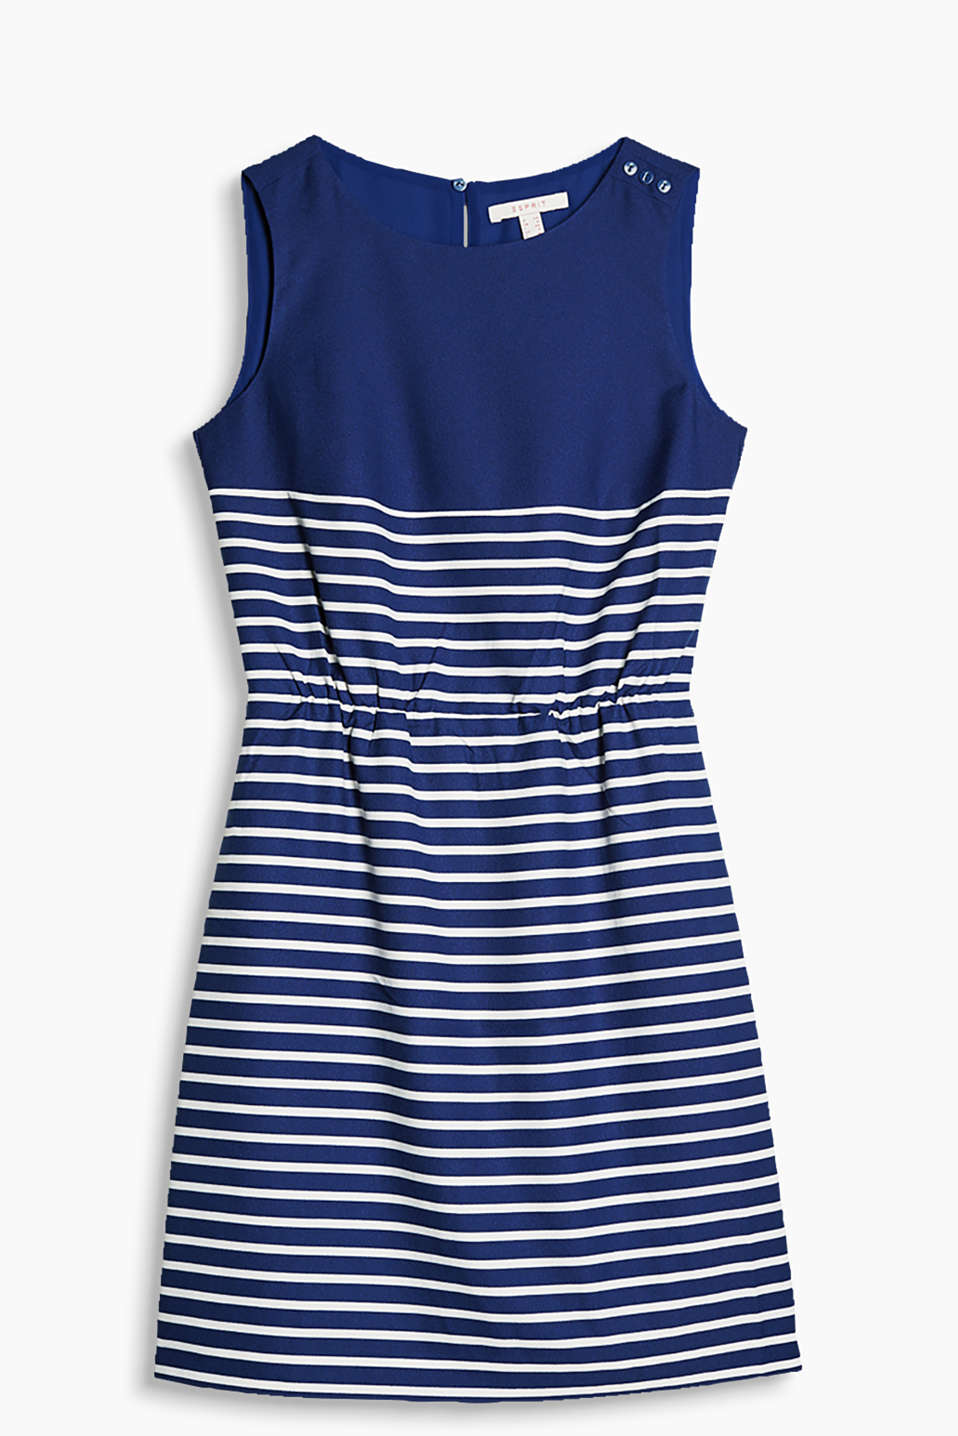 Nautical woven dress in a retro style with stripes, an elasticated dividing seam and shoulder buttons